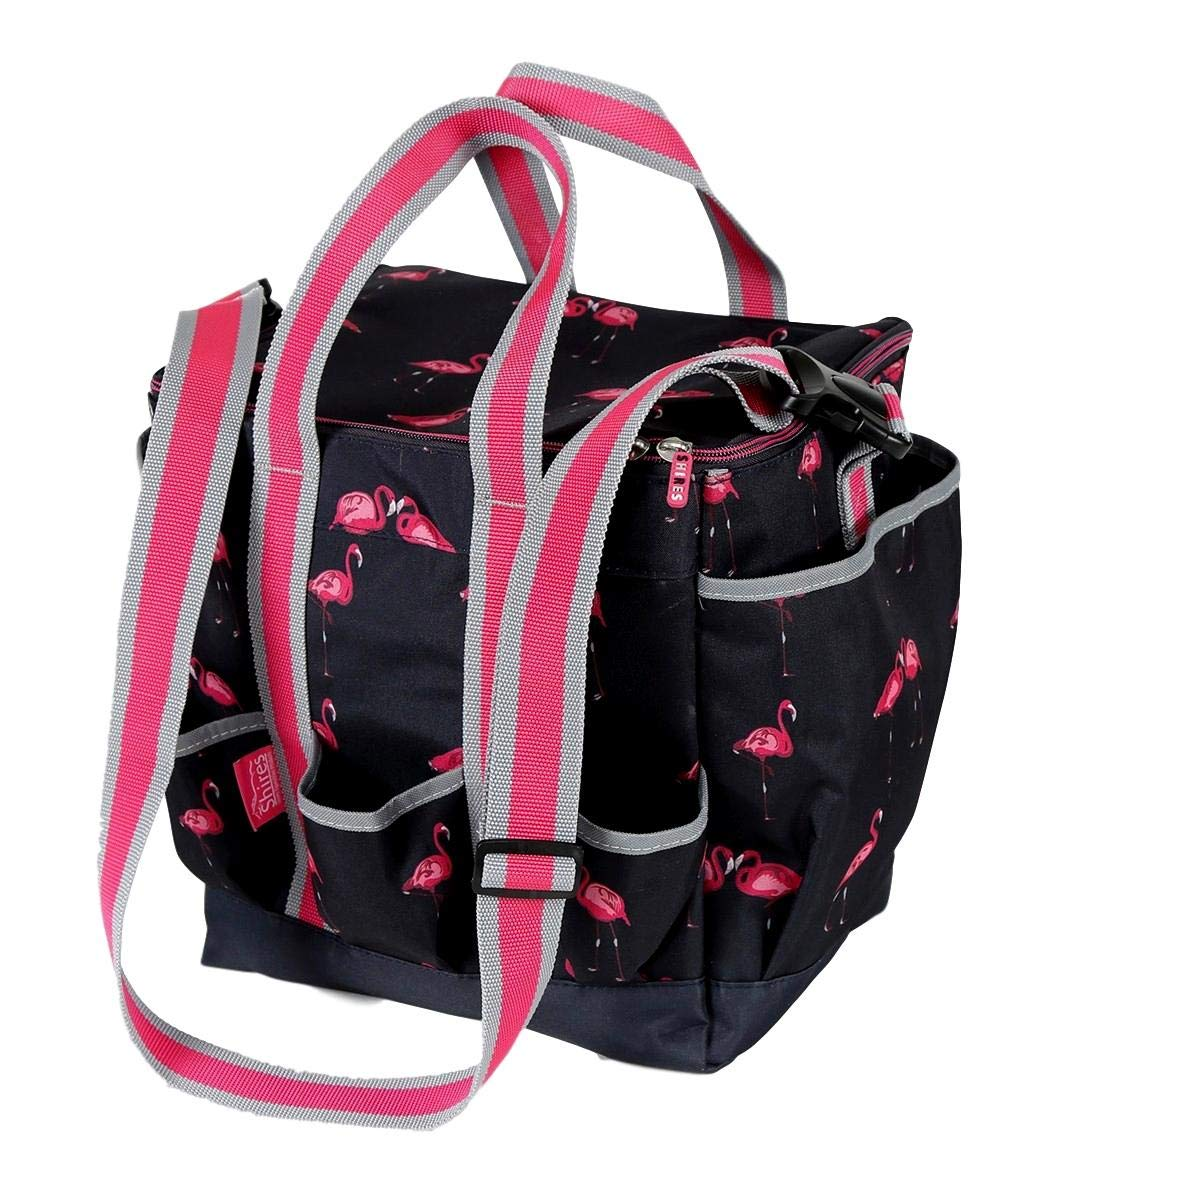 Shires Grooming Kit Cover, Flamingo Print, One Size